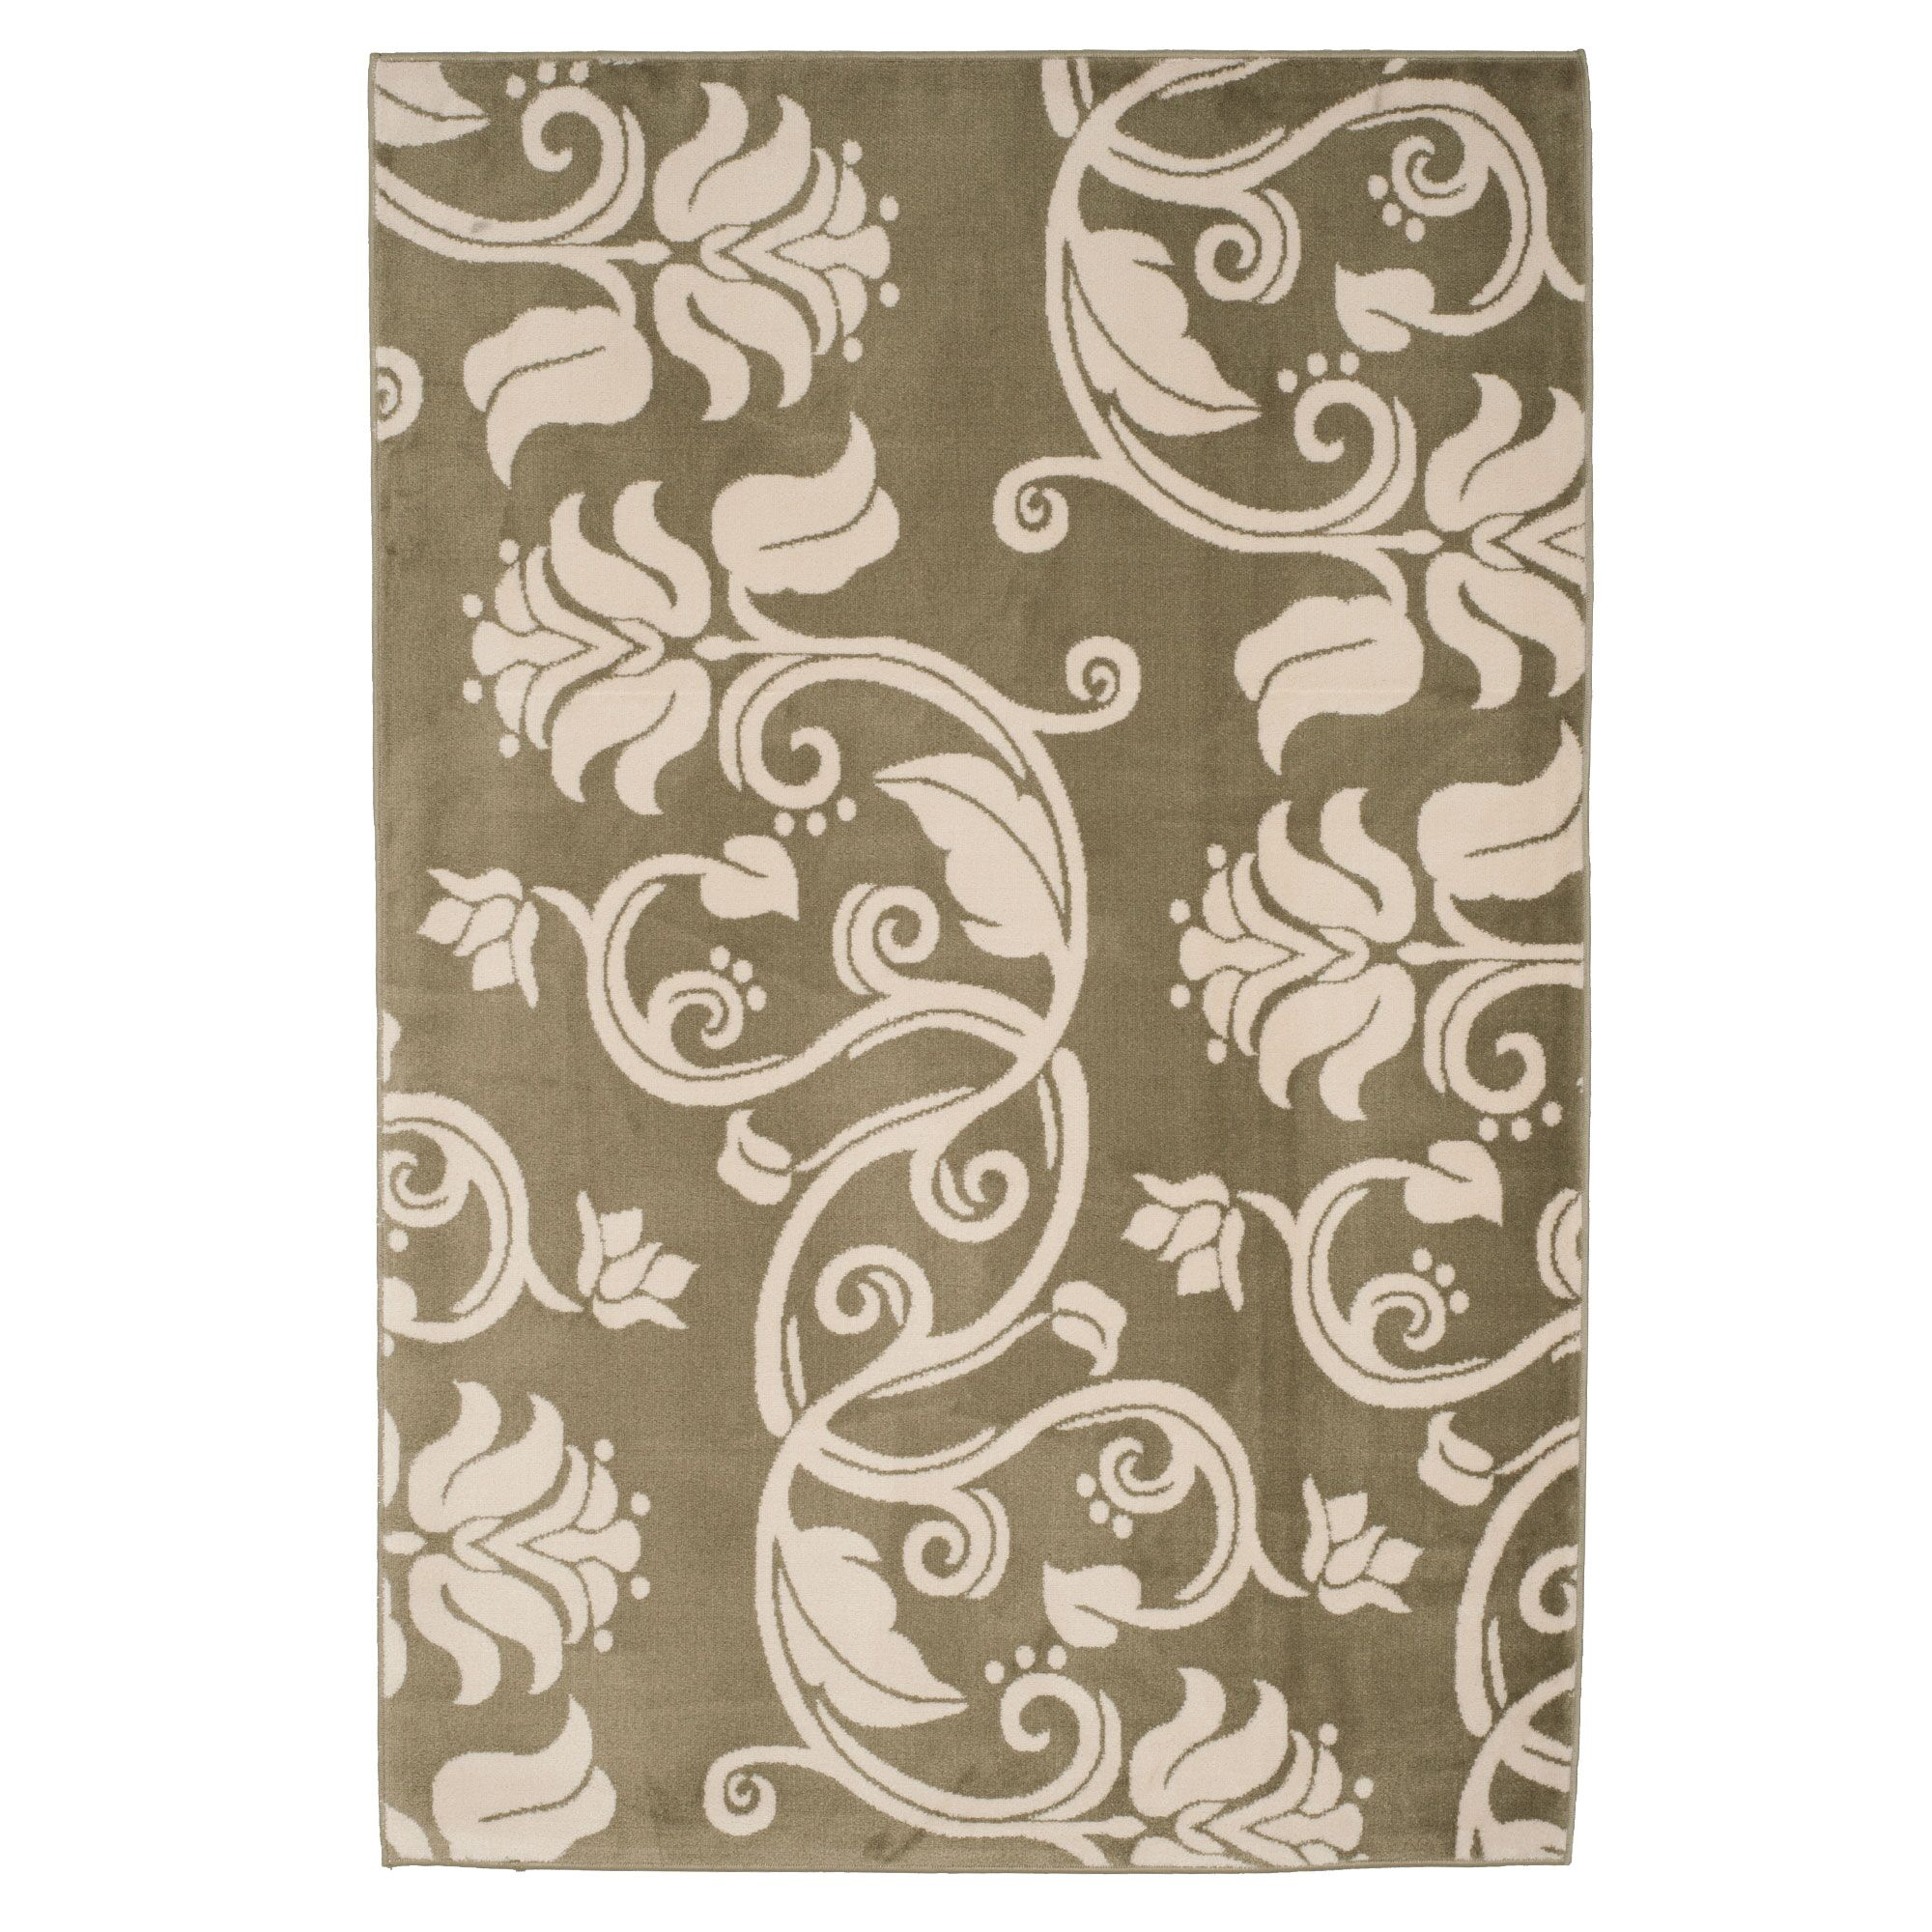 Floral Scroll Green & Ivory Area Rug Rug Size: Rectangle 5' x 7'6